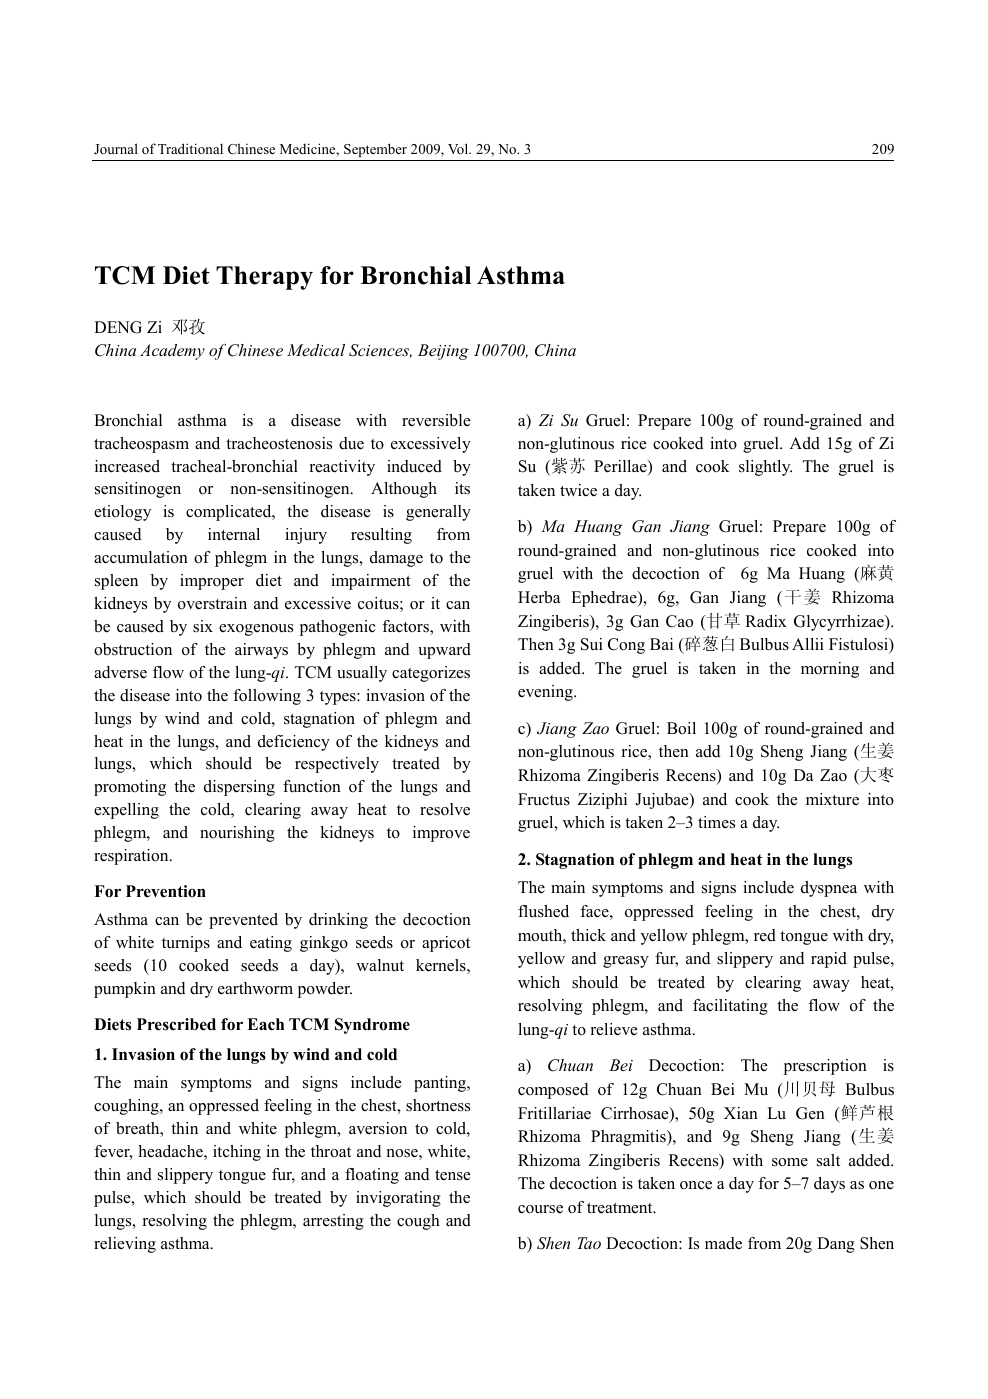 TCM Diet Therapy for Bronchial Asthma – topic of research